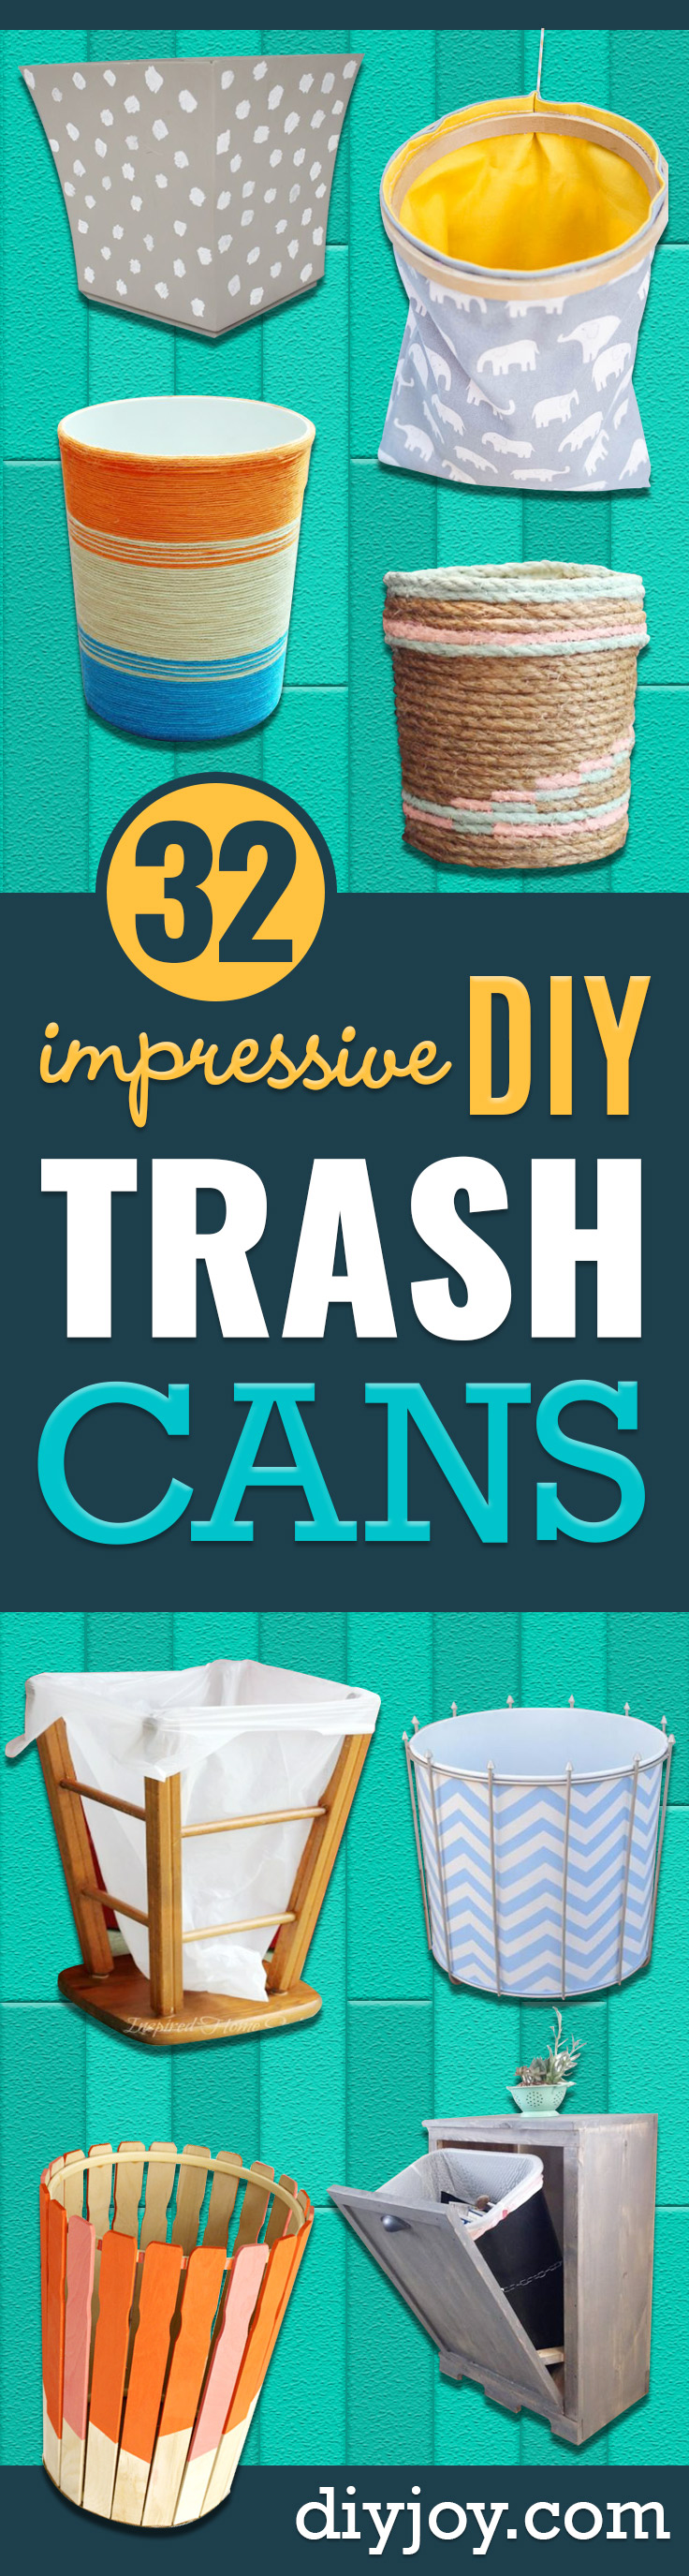 DIY Trash Cans - Easy Do It Yourself Projects to Make Cute, Decorative Trash Cans for Bathroom, Kitchen and Bedroom - Trash Can Makeover, Hidden Kitchen Storage With Pull Out Cabinet - Lids, Liners and Painted Decor Ideas for Updating the Bin #diykitchen #diybath #trashcans #diy #diyideas #diyjoy http://diyjoy.com/diy-trash-cans